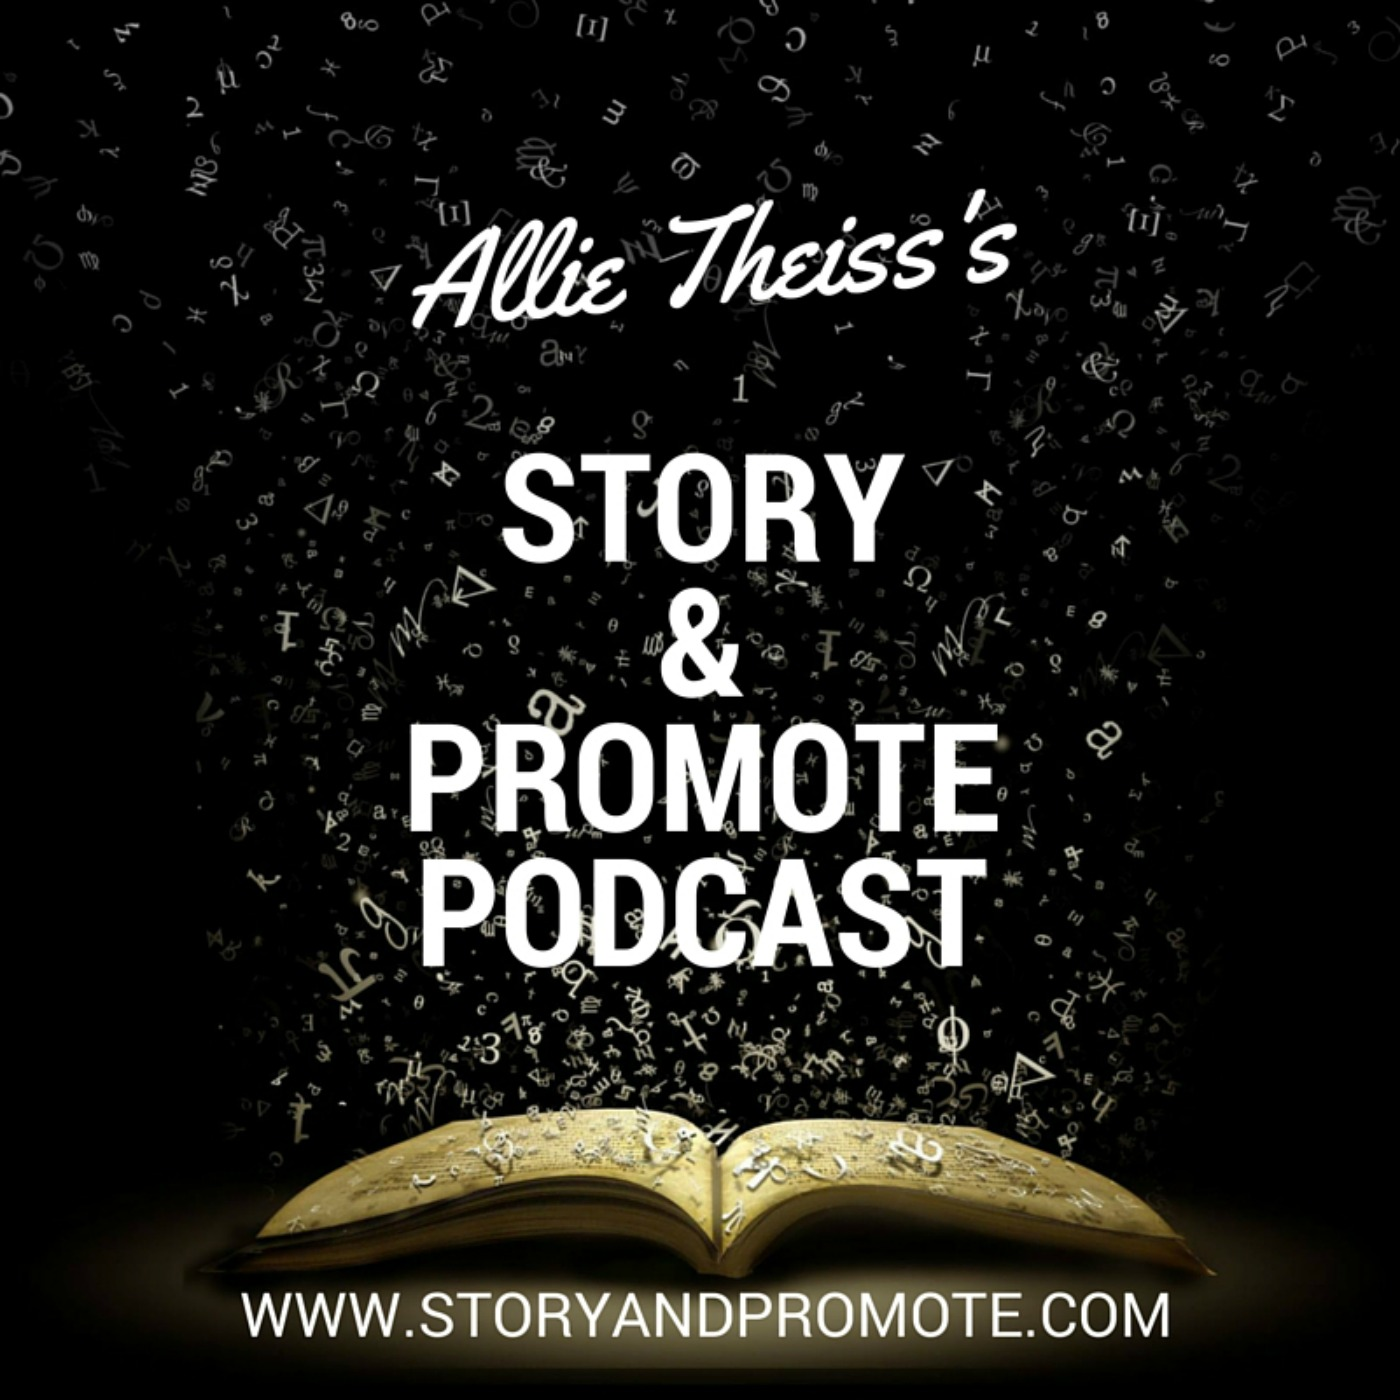 Story and Promote Podcast: The Excuse of Time Management